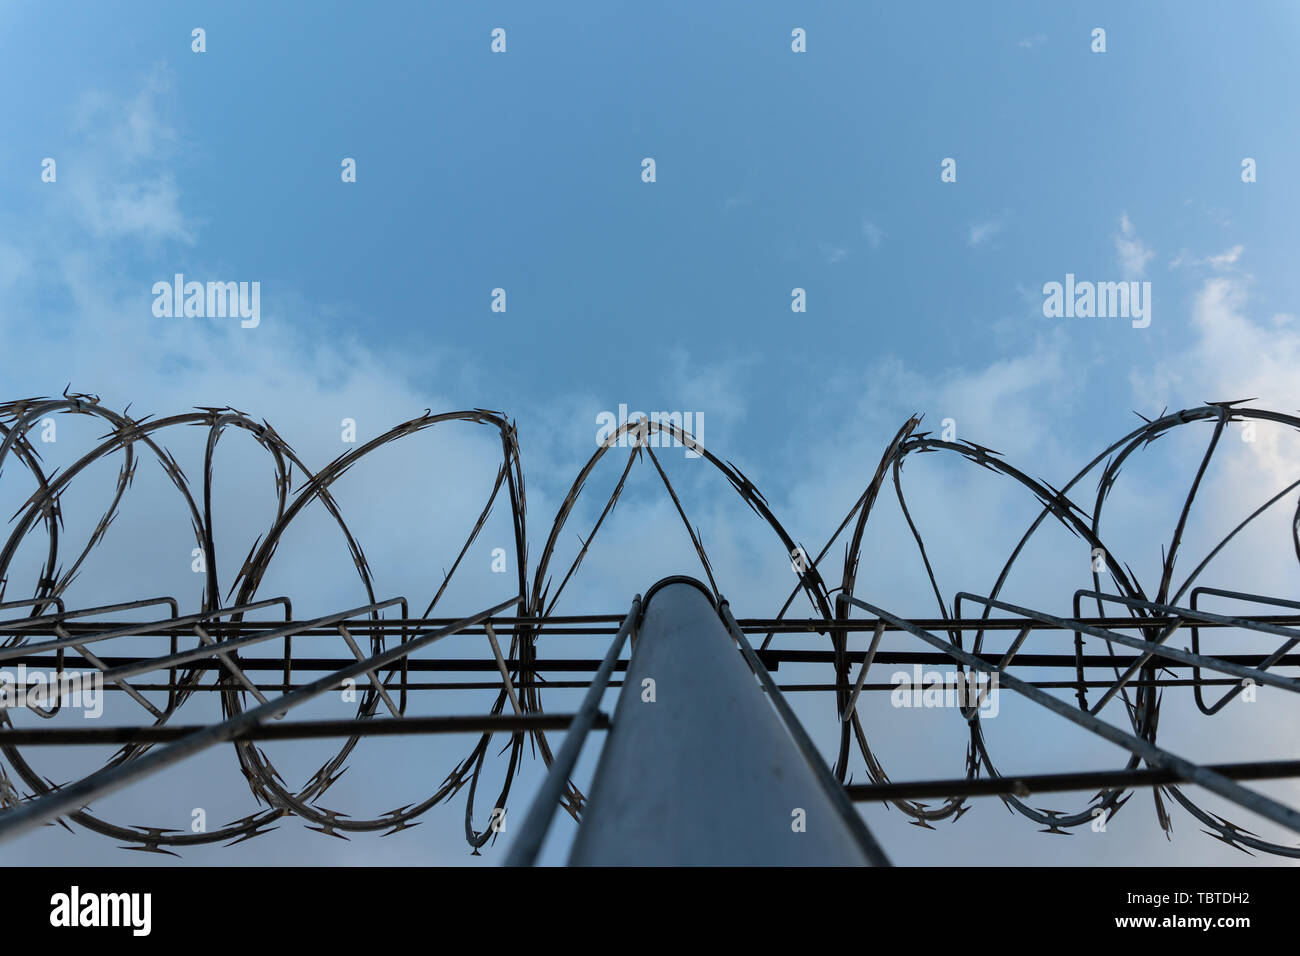 Barbed wire fence with bright blue sky to feel silent and lonely and want freedom. Dramatic clouds behind barbed wire fence on a prison wall. - Stock Image